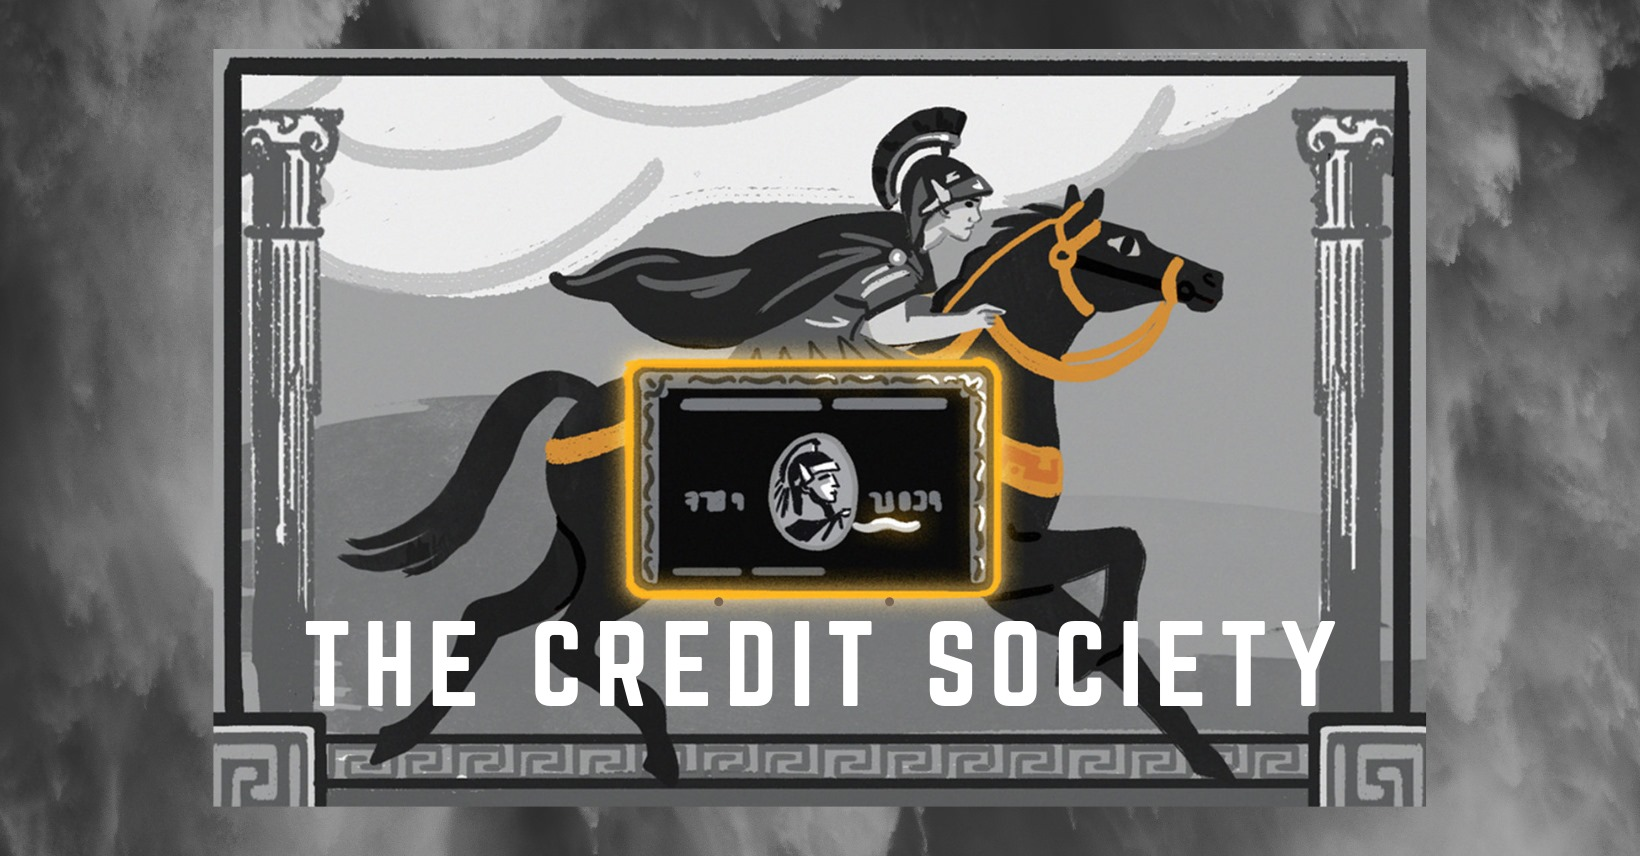 The Credit Society - Join our Credit community on Facebook with over 4,000 members!